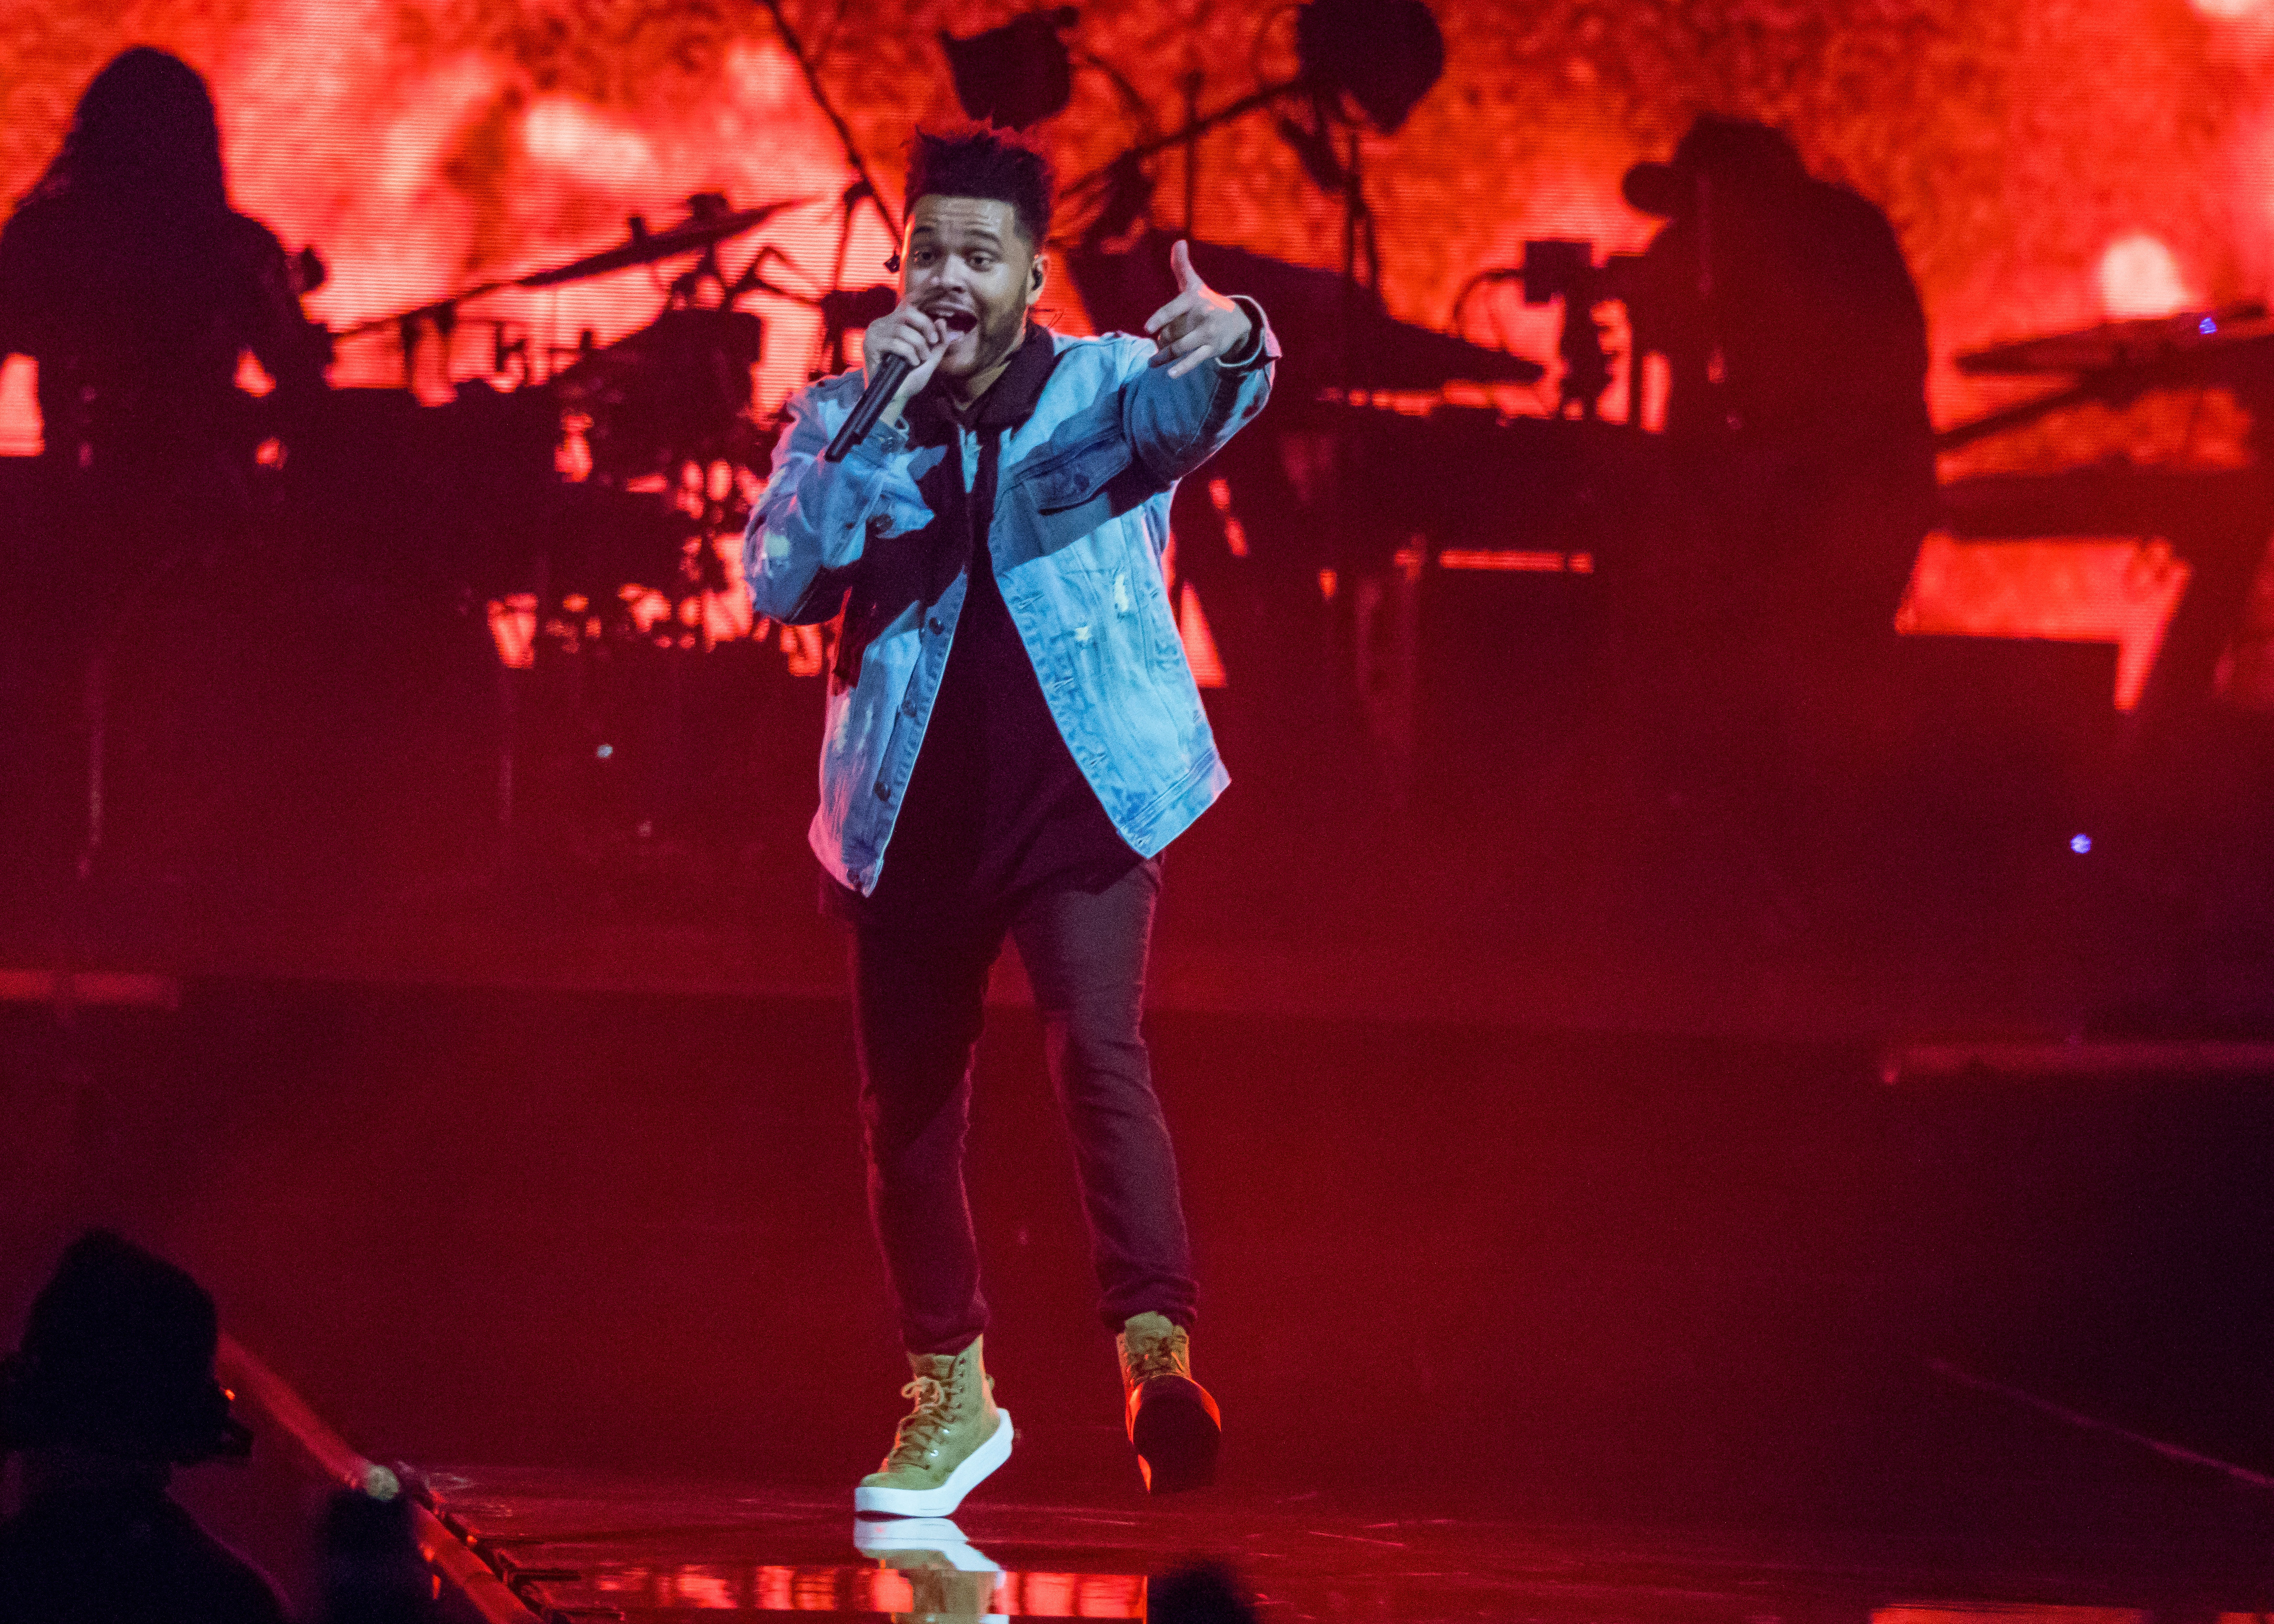 Singer Abel Tesfaye, known by his stage name The Weeknd, performs on Nov. 1, 2017 in Detroit, Michigan.